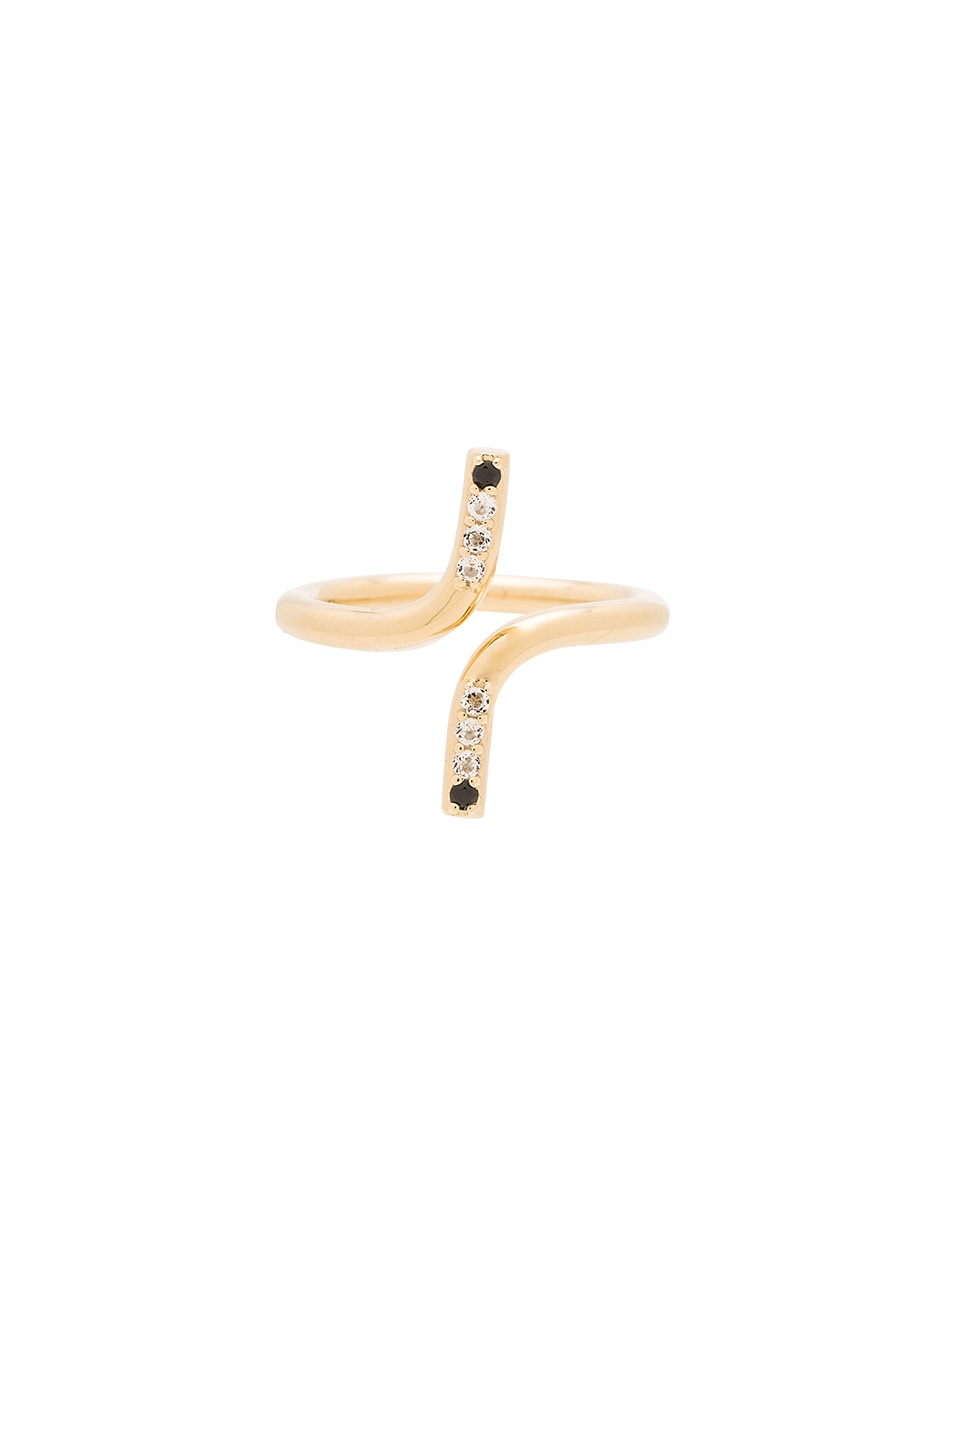 Elizabeth and James Klint Ring in Yellow Gold